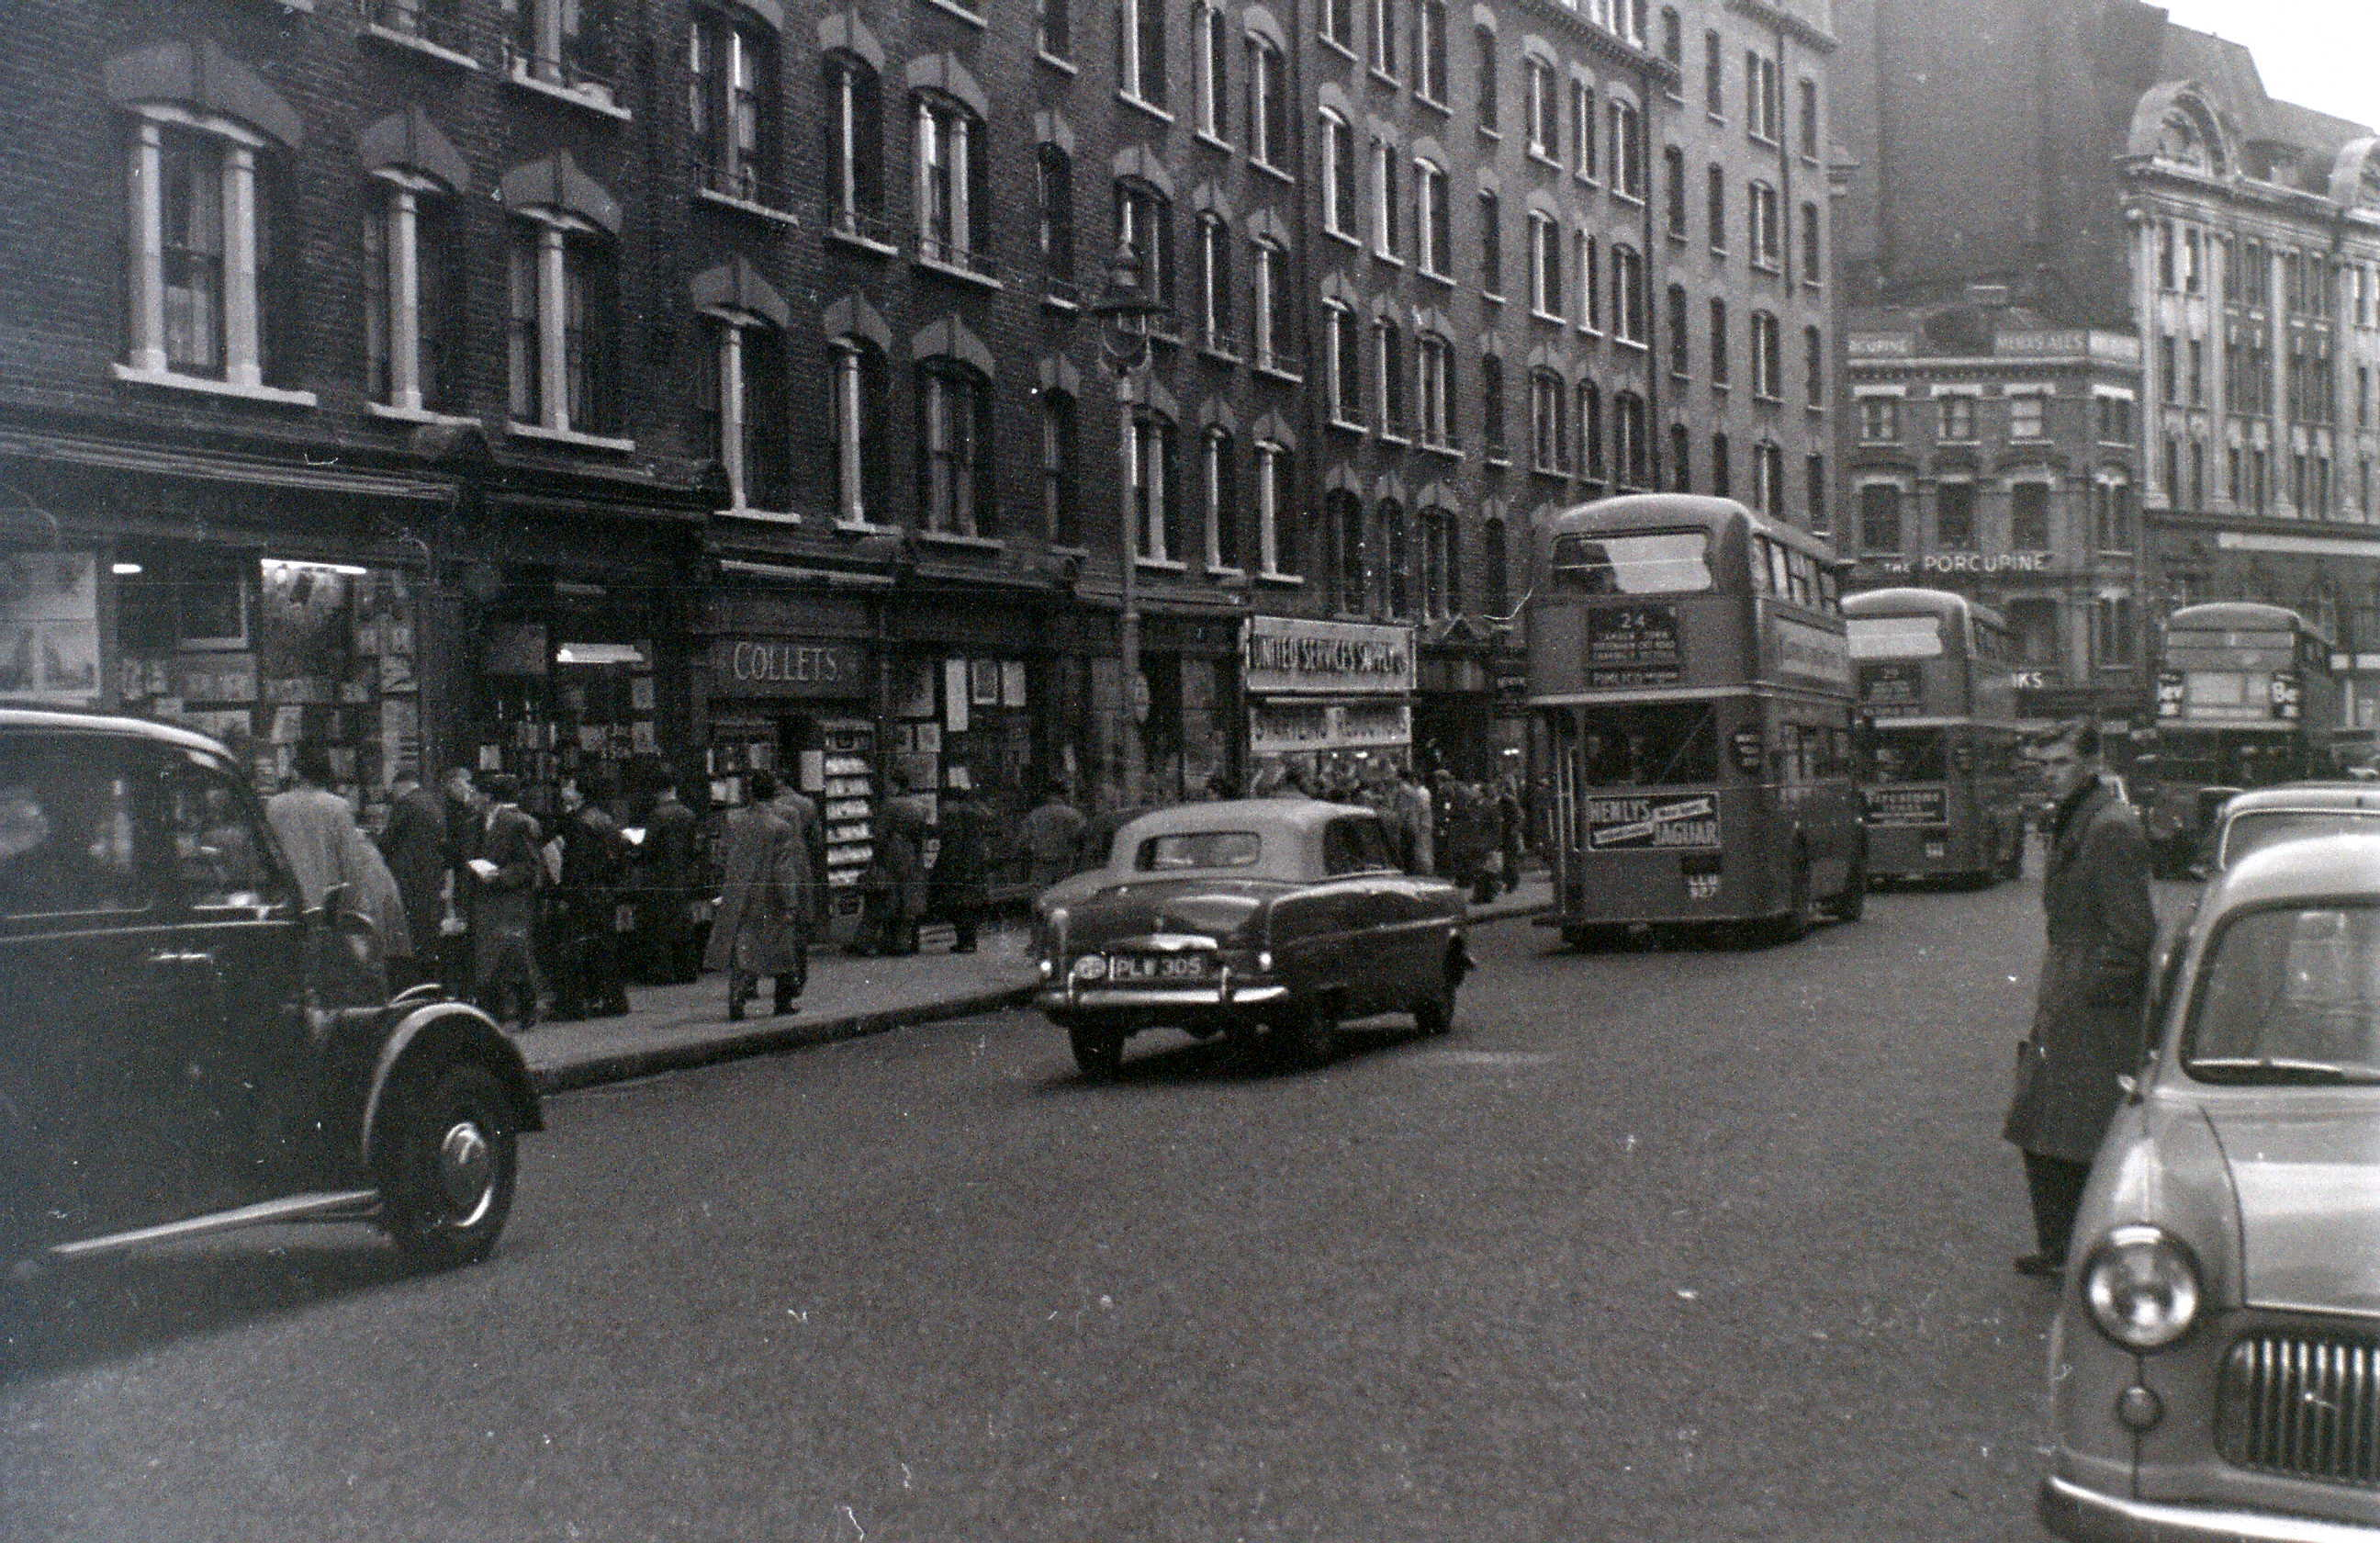 Charing Cross Road, London, 5 November 1955 looking south